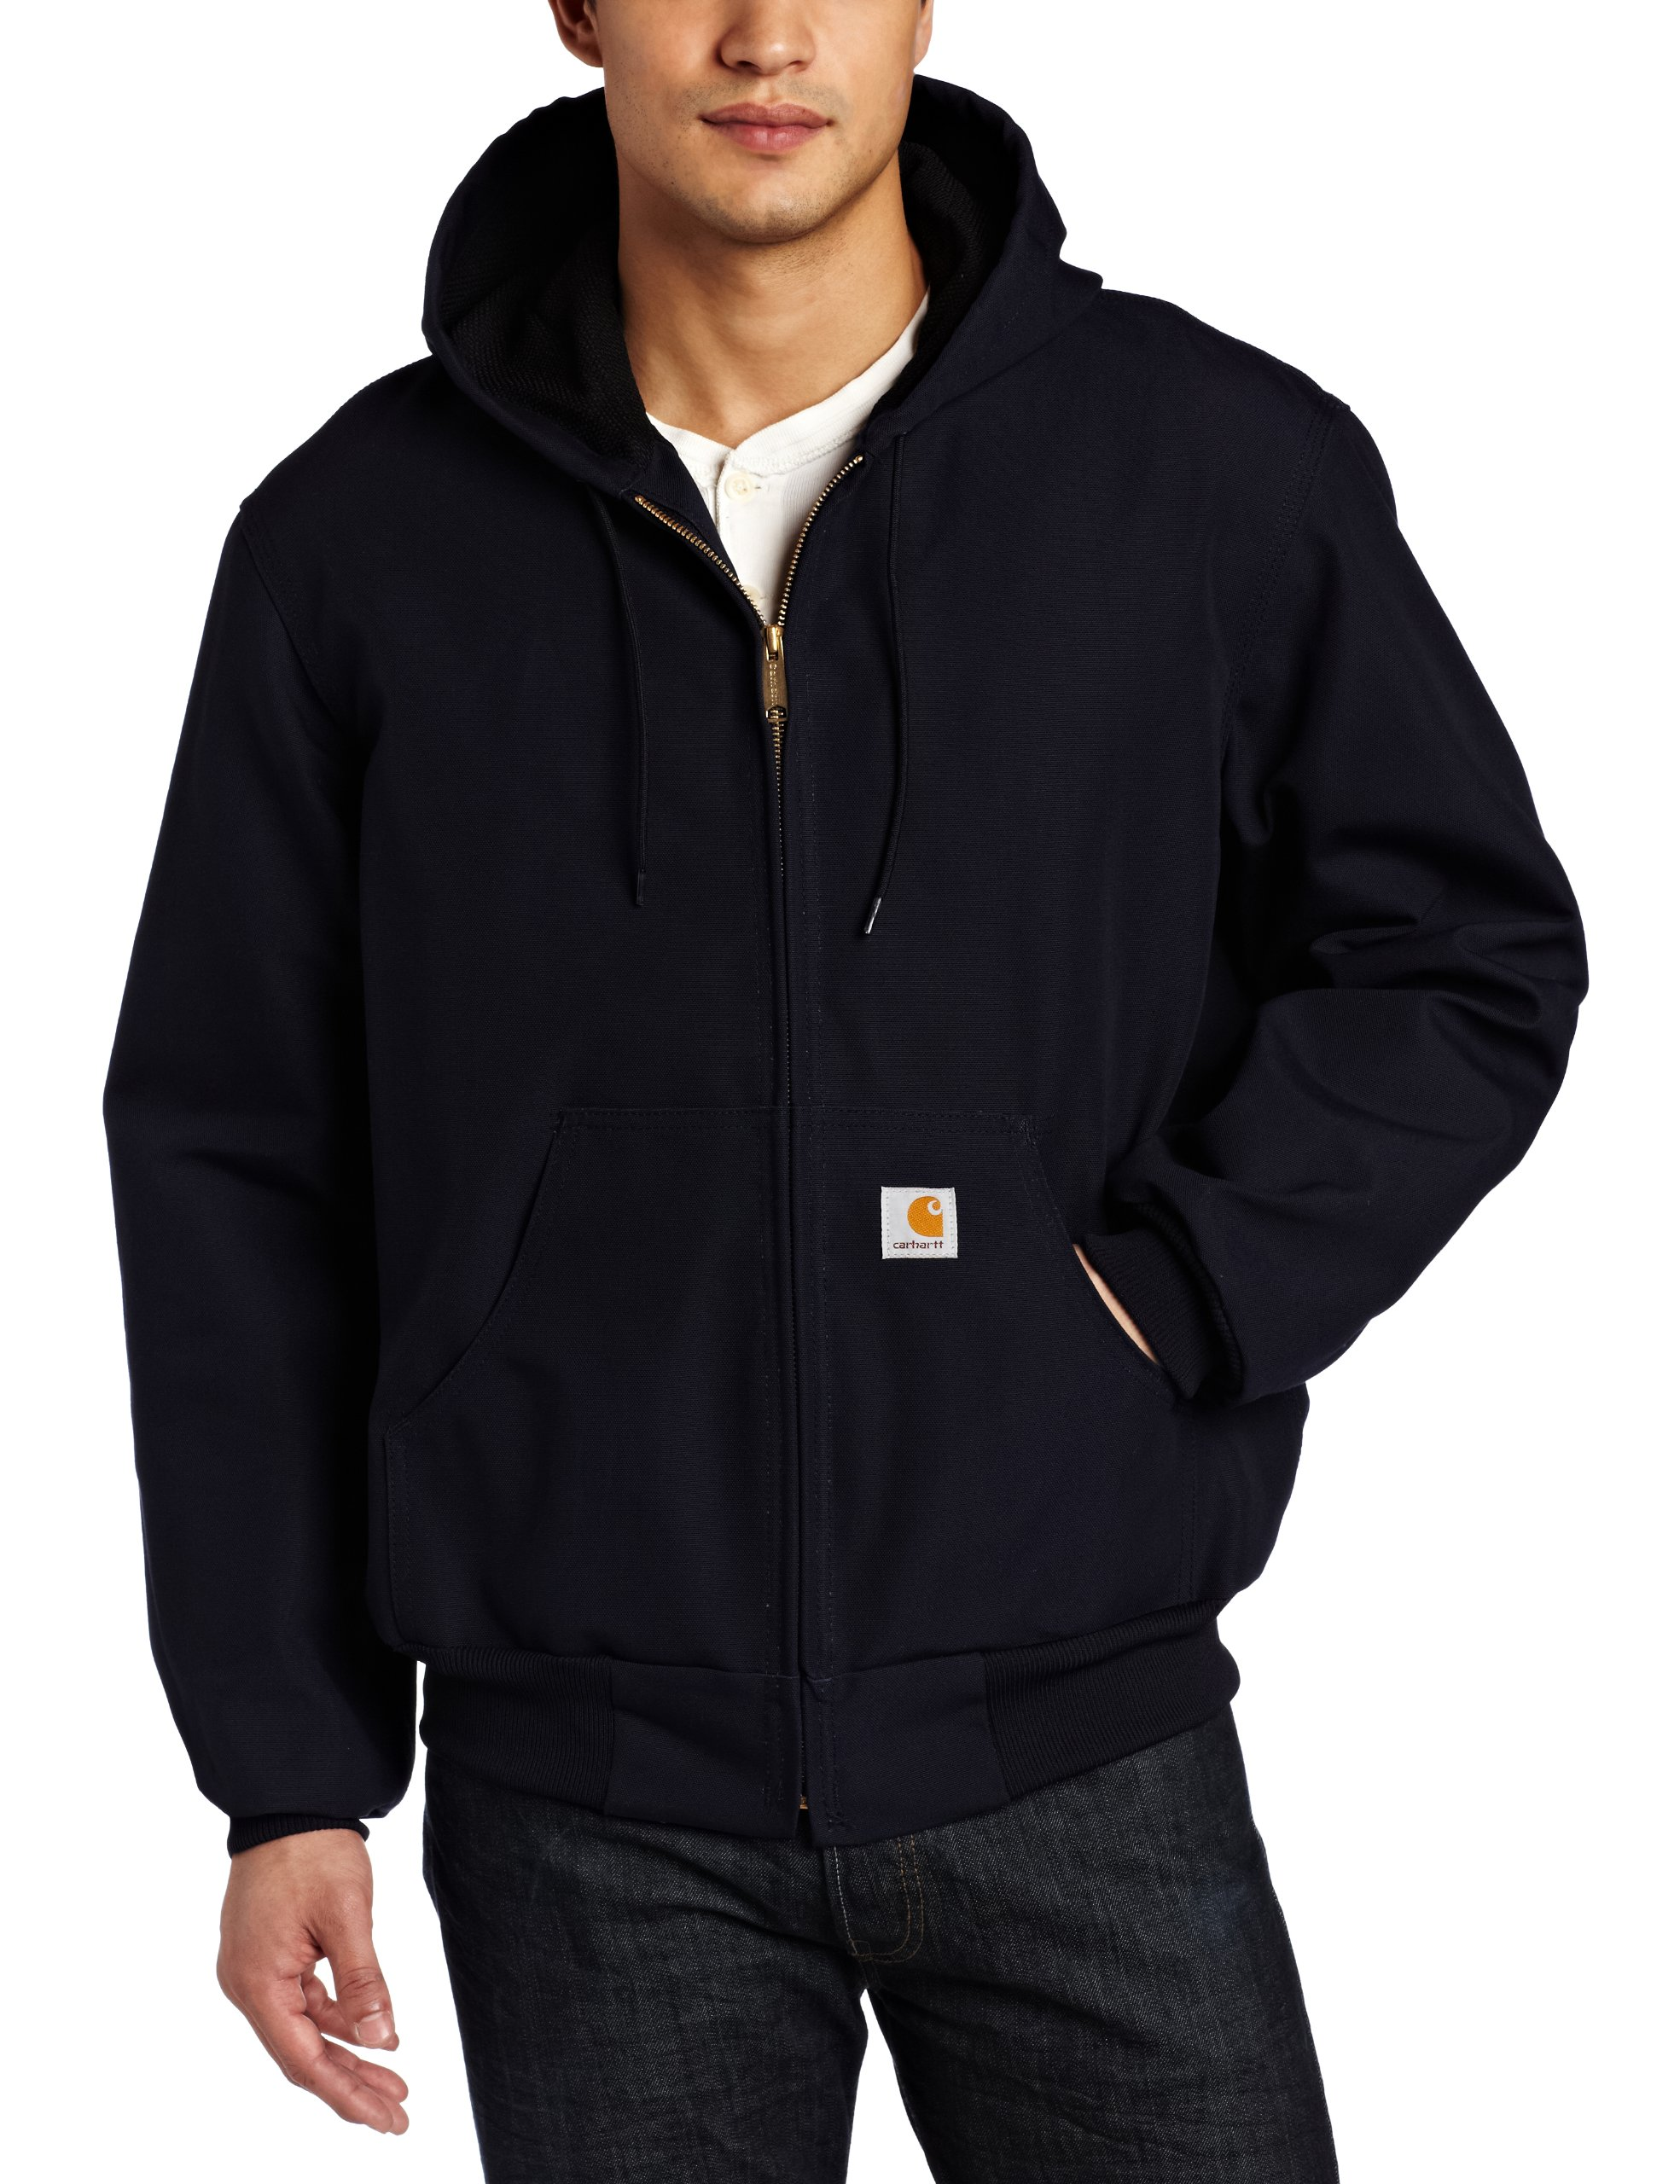 Carhartt Men's Thermal Lined Duck Active Jacket J131 (Regular and Big & Tall Sizes), Dark Navy (Closeout), 4X-Large by Carhartt